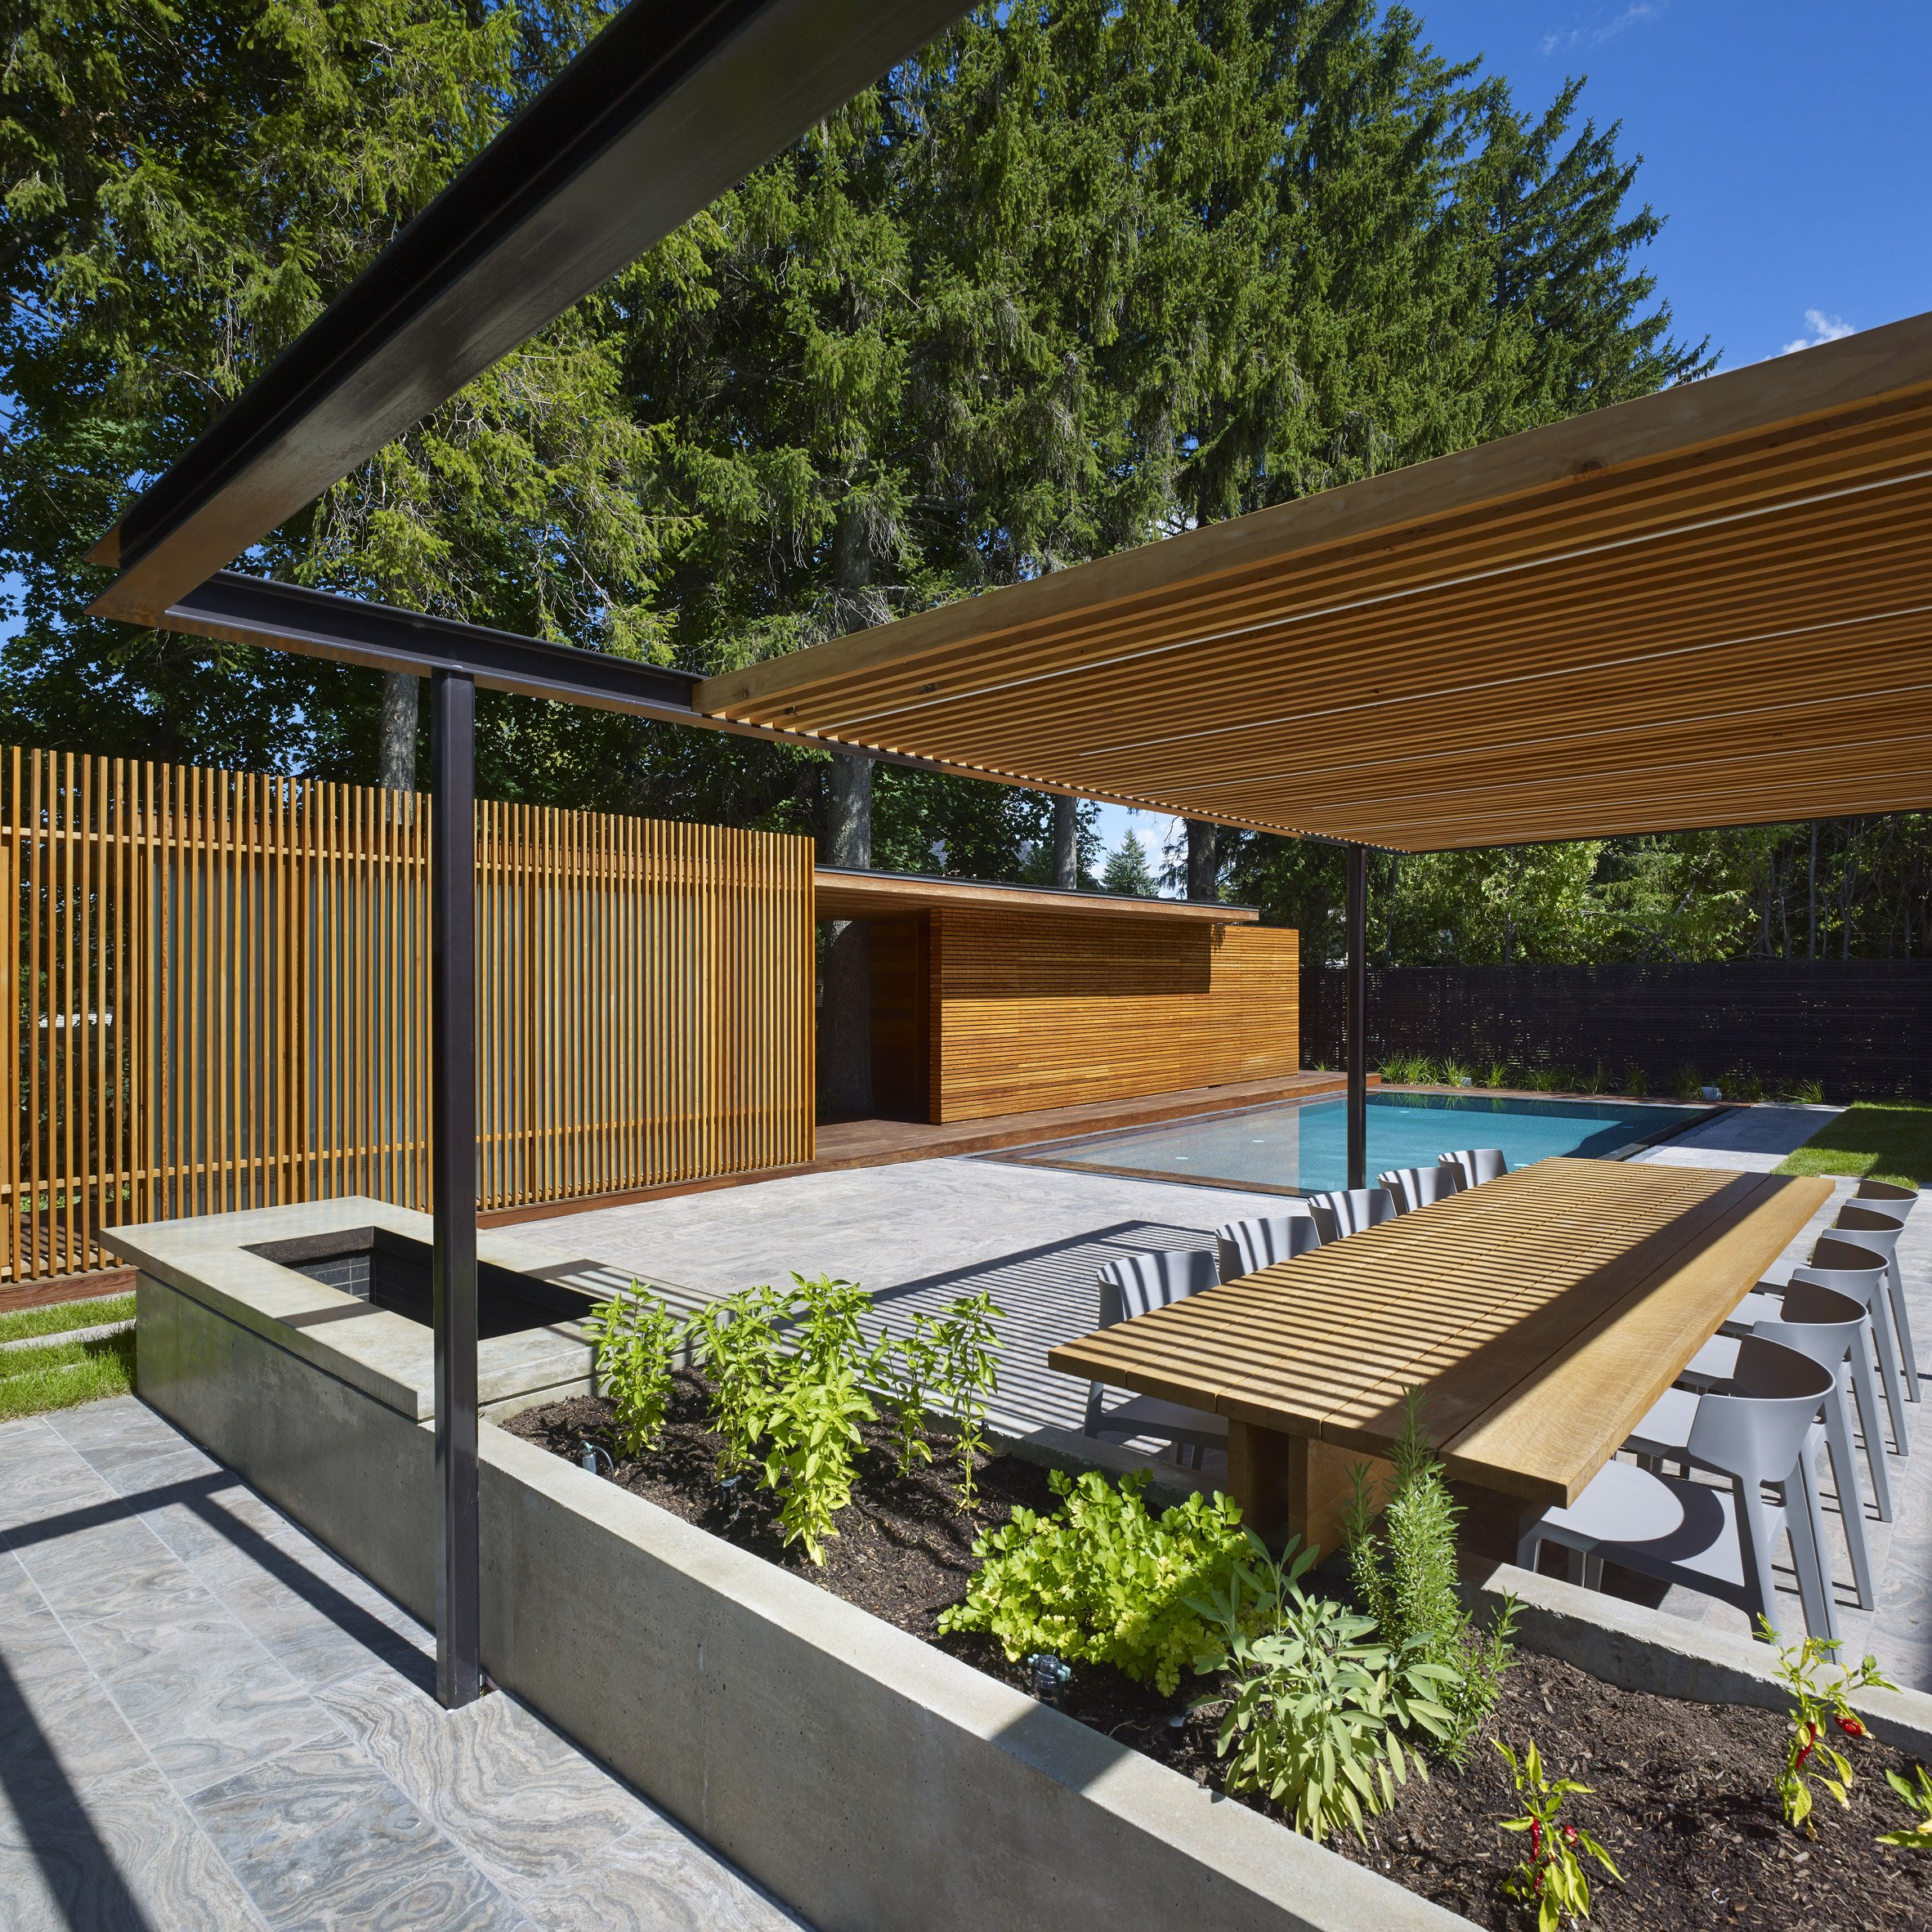 pool house design and architecture dezeen wooden pool house by amantea architects provides privacy for canadian family